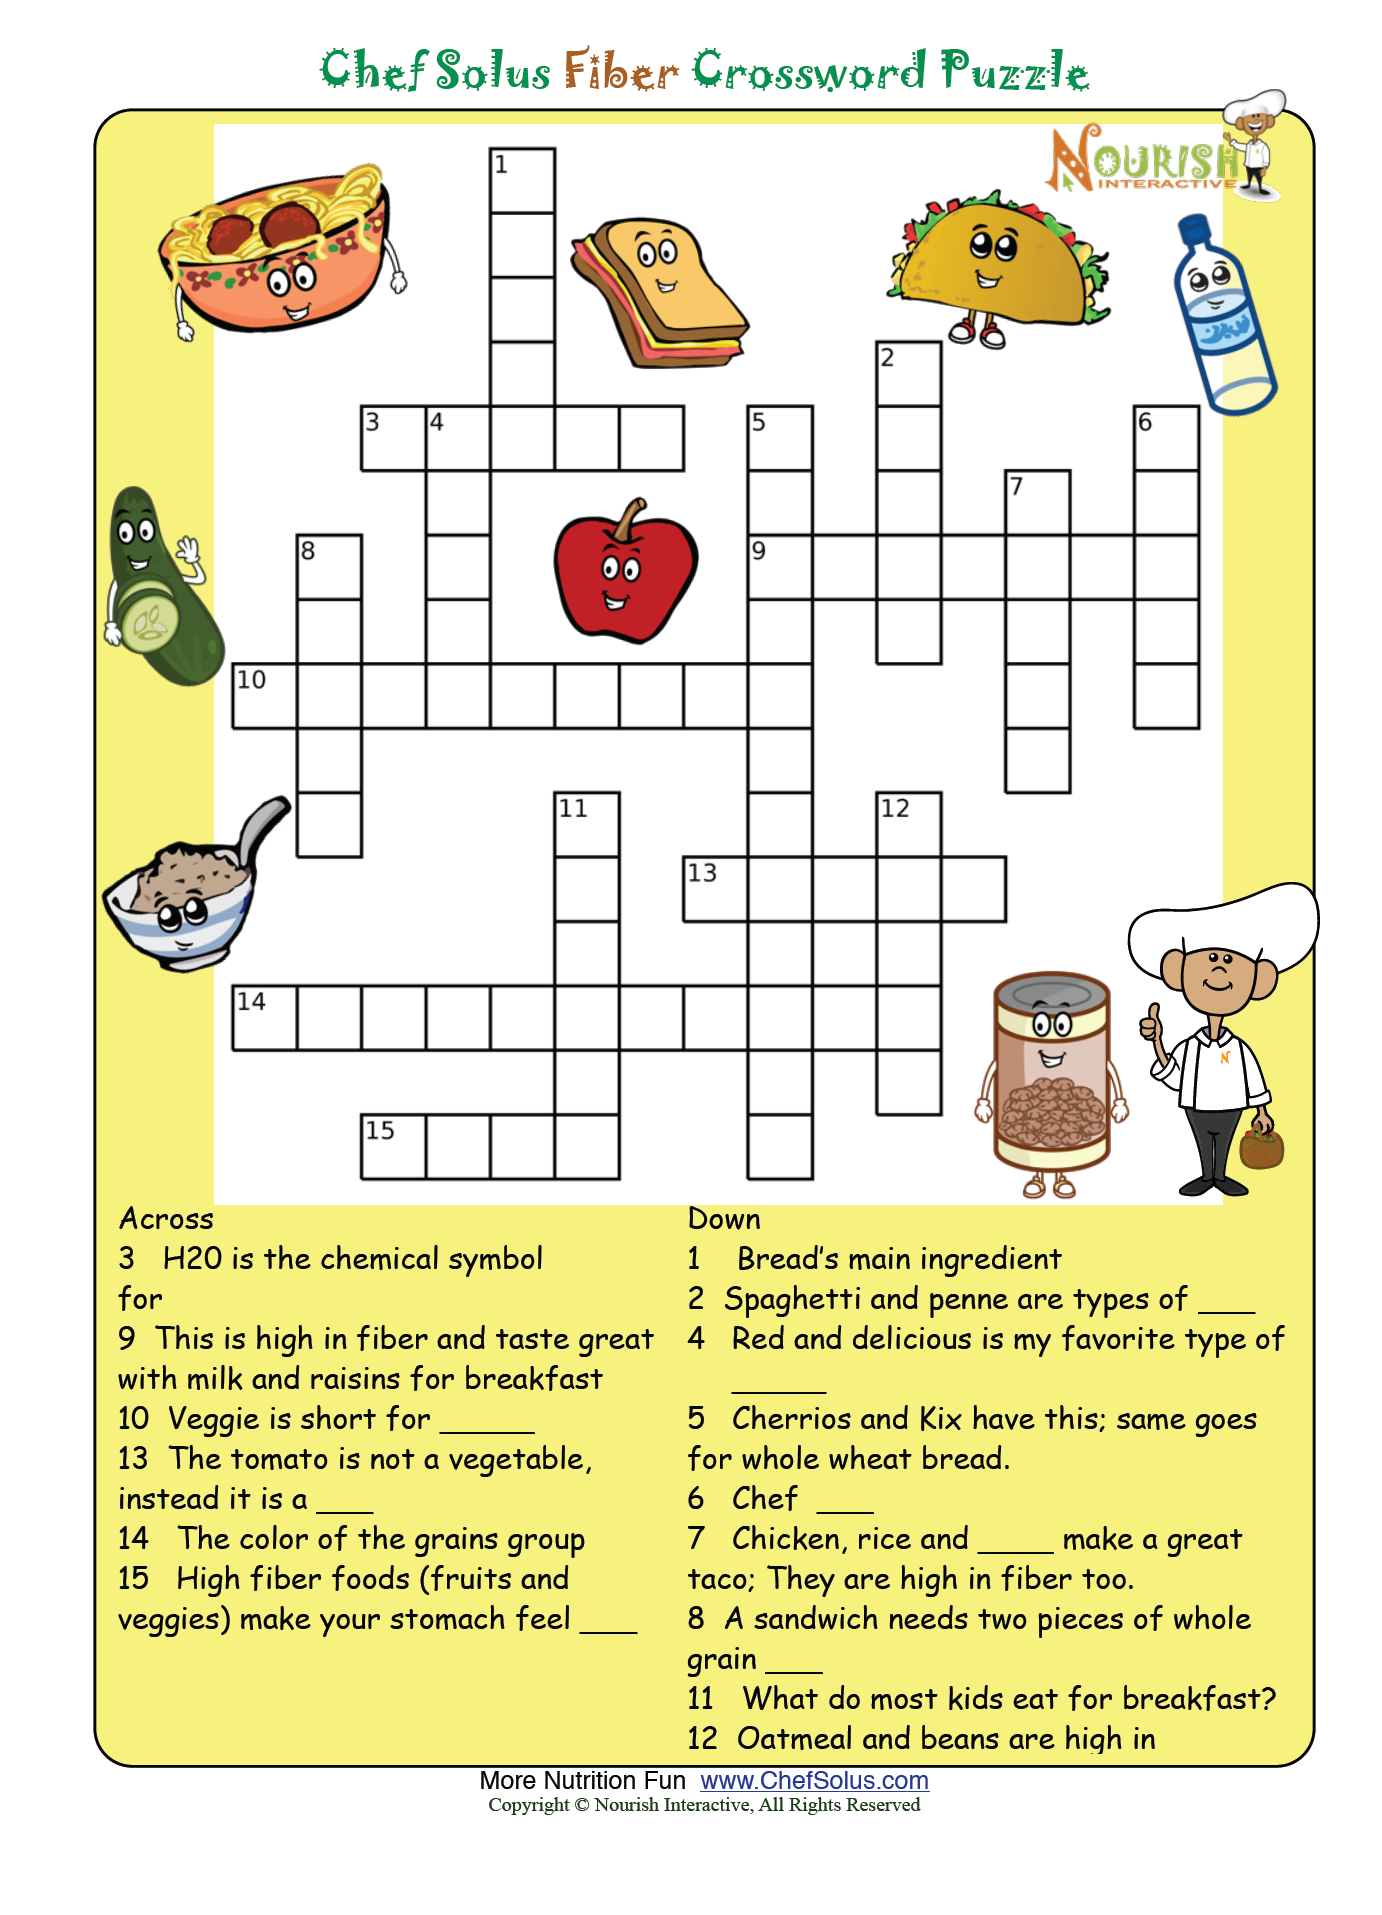 Fiber Puzzle Please Make Sure To Print The Answer Key As